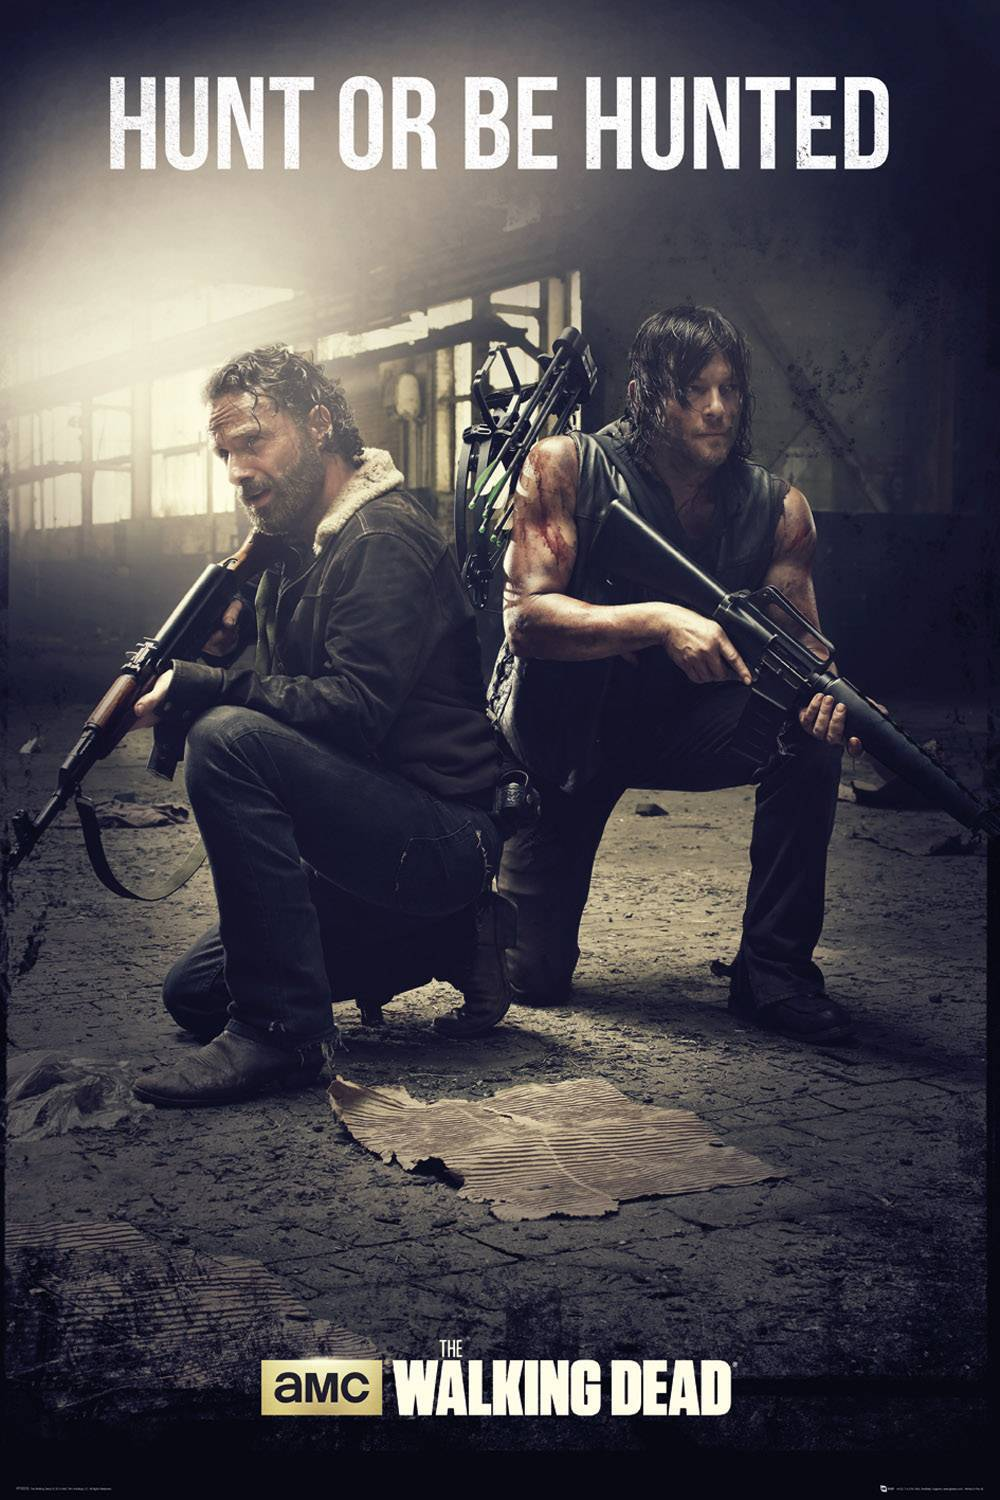 The Walking Dead Daryl and Rick poster